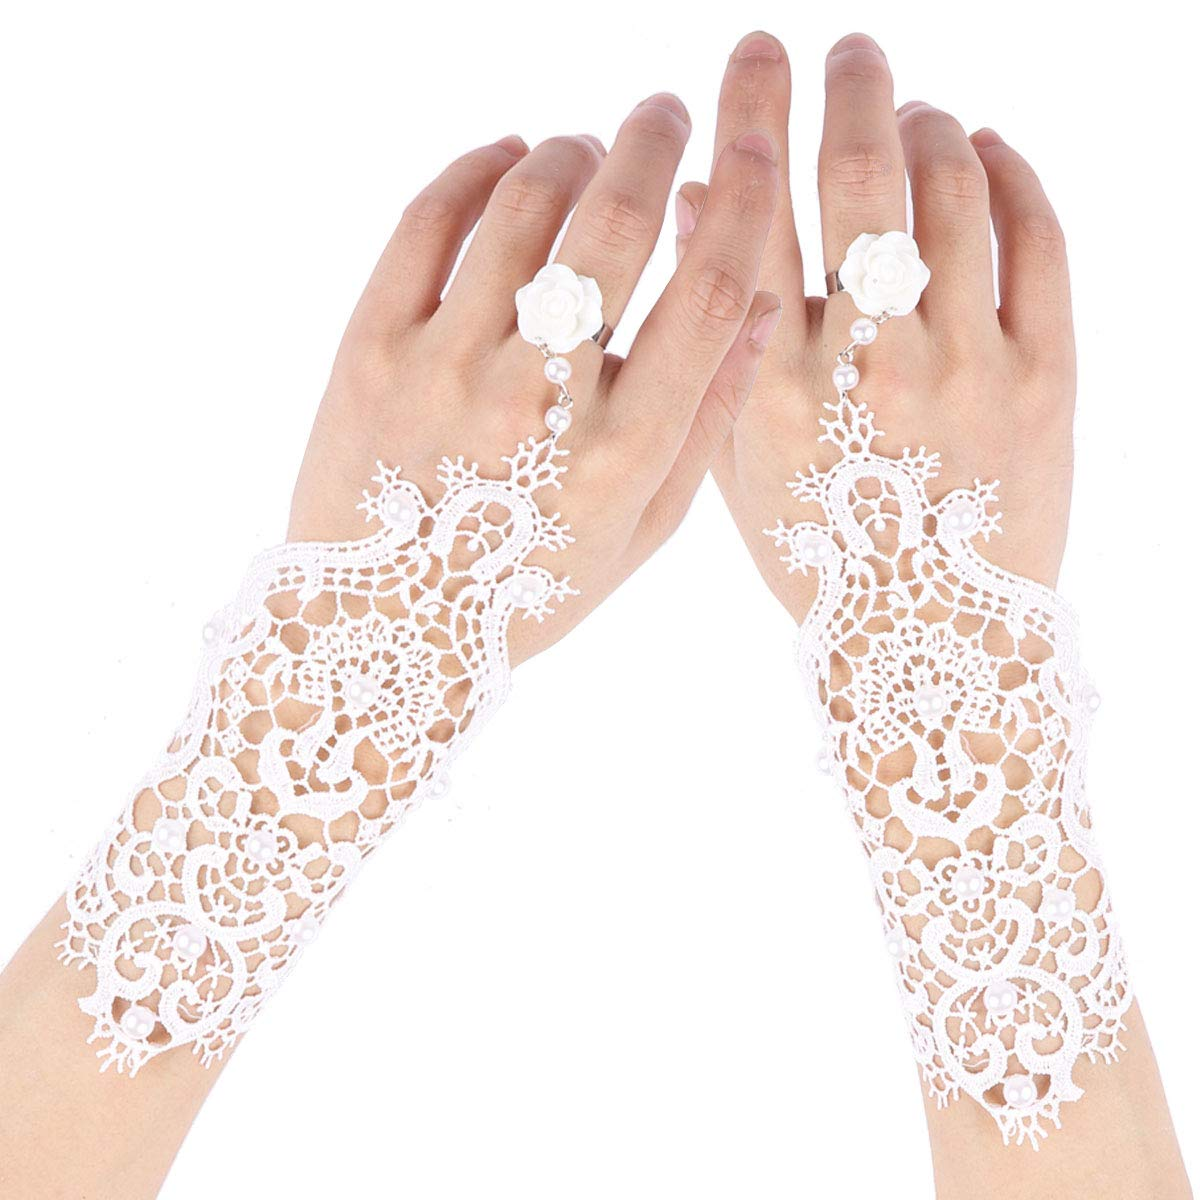 YiZYiF 1 Pair Vintage Floral Lace Gloves Women Fingerless Lace Up Bracelet Steampunk Slave Wristband Ring Halloween Wedding Party Accessories Type B One Size